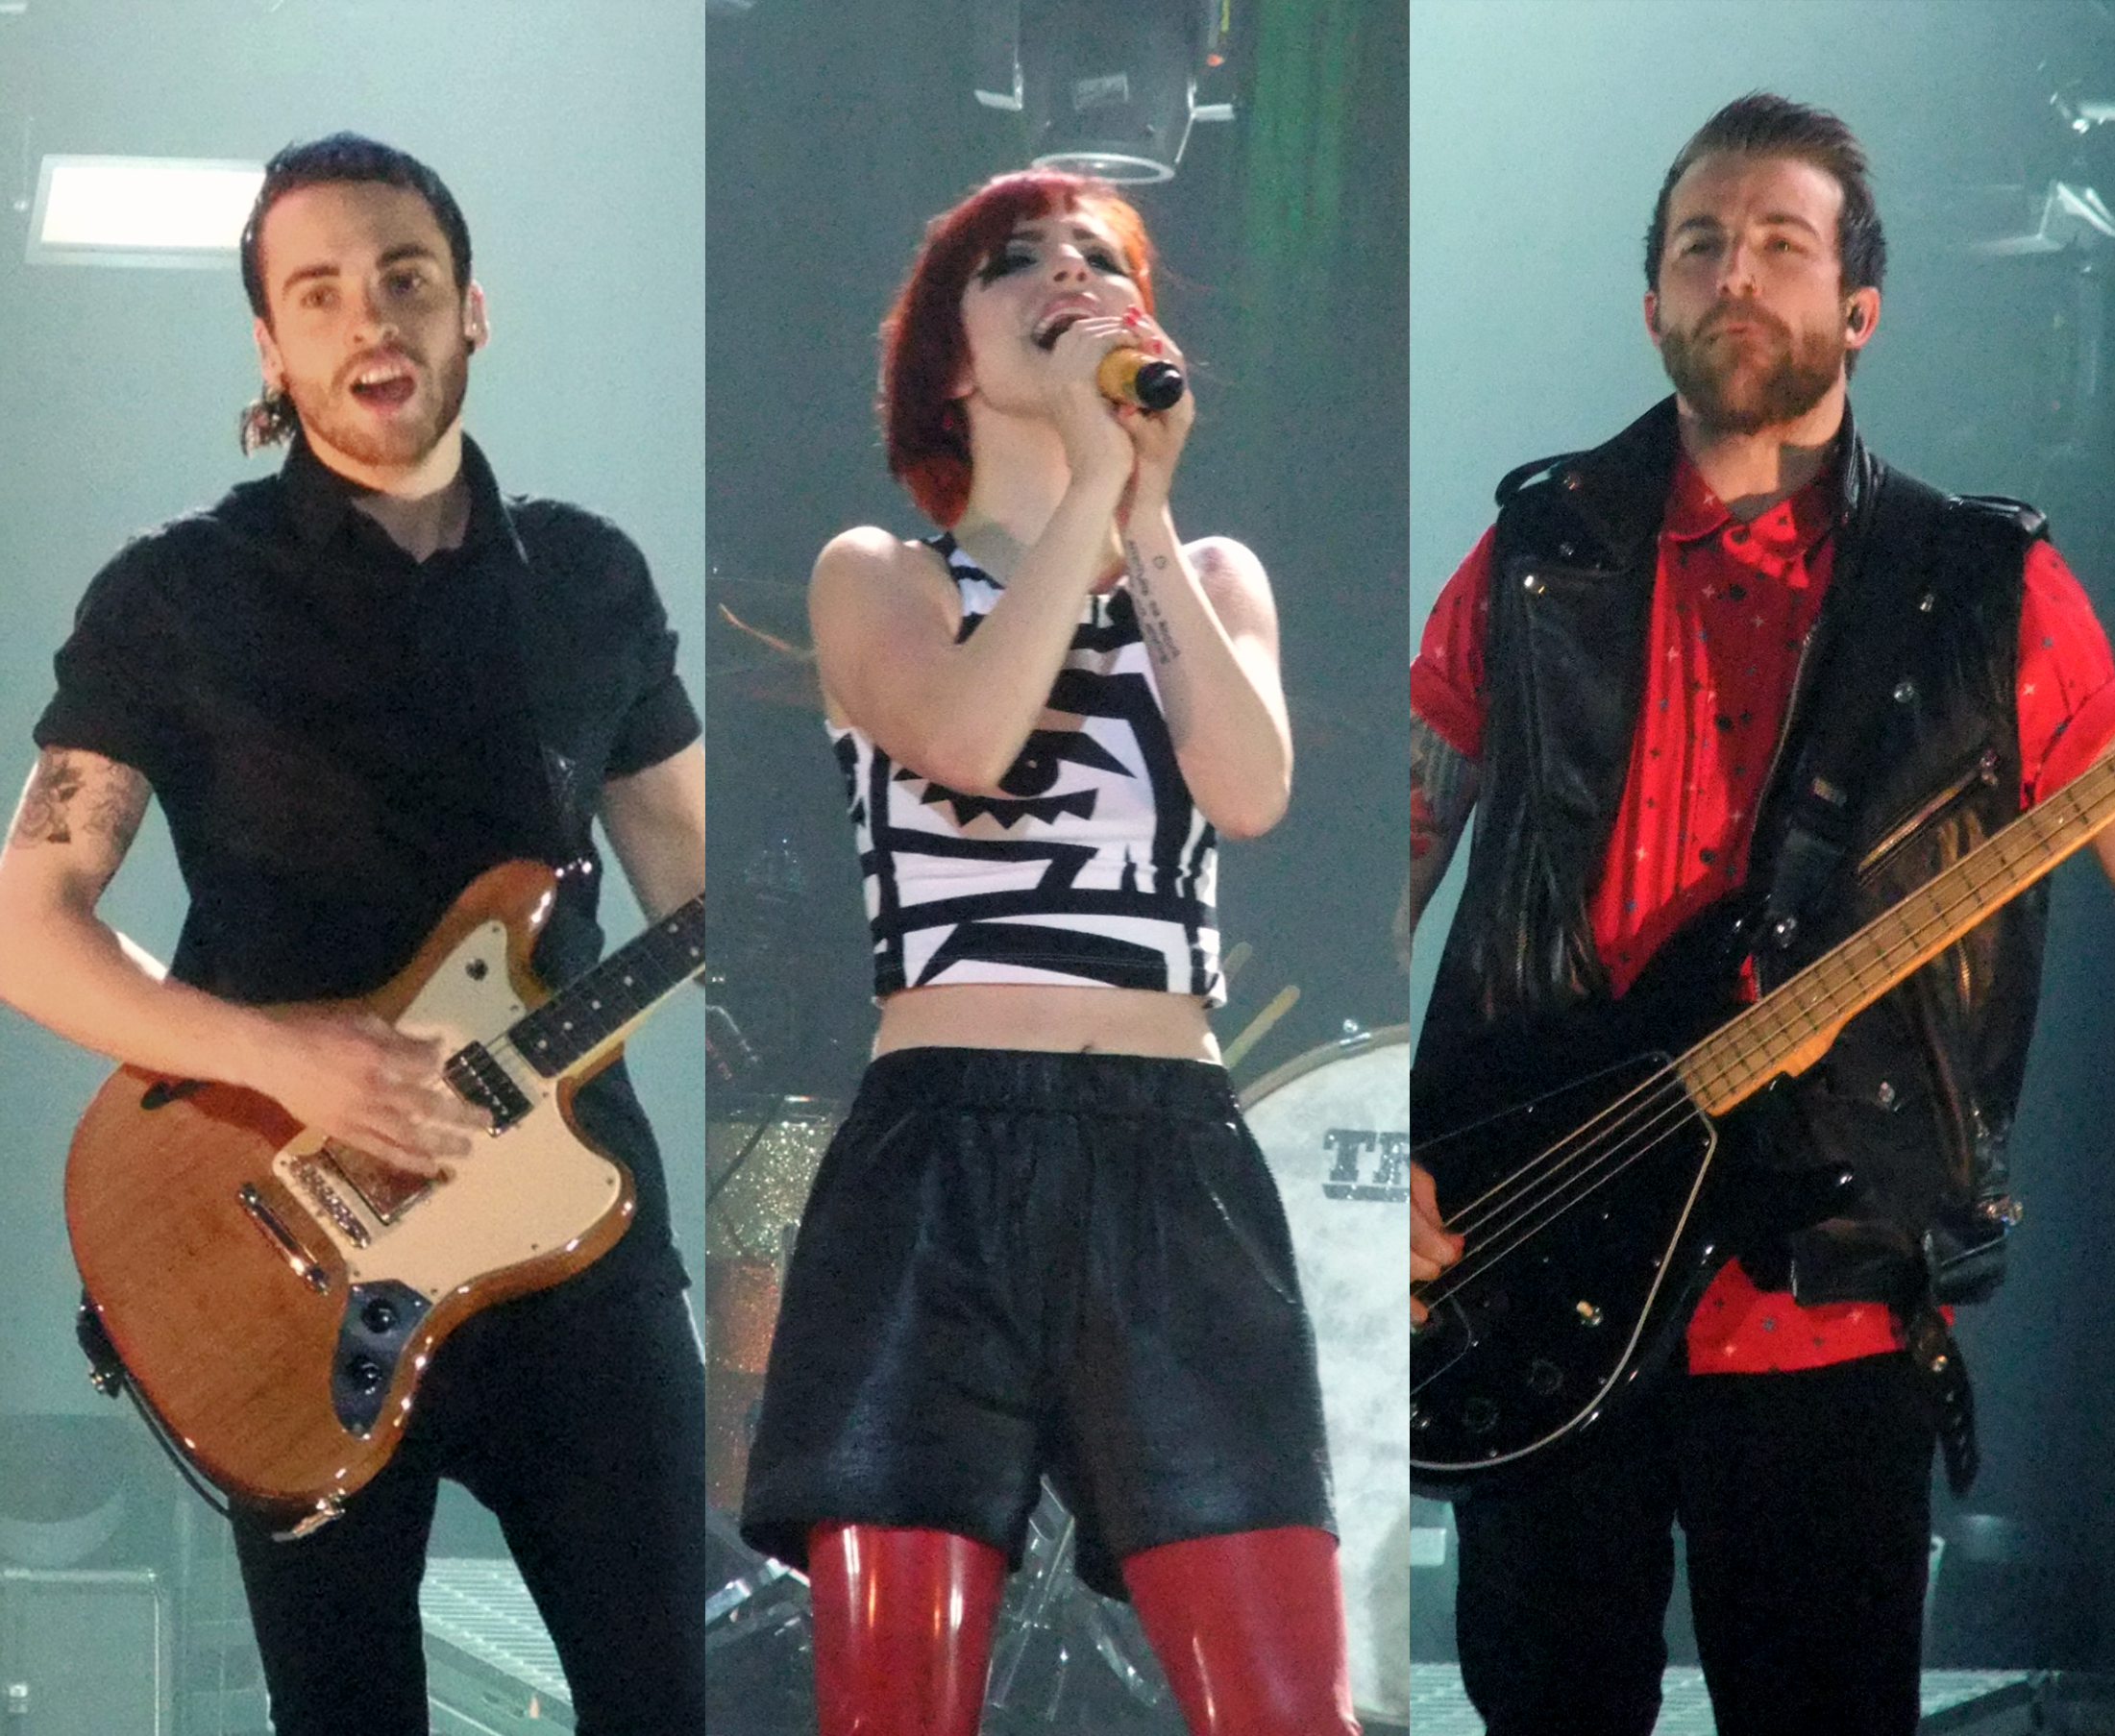 File:Paramore 2013.png - Wikimedia Commons Paramore 013